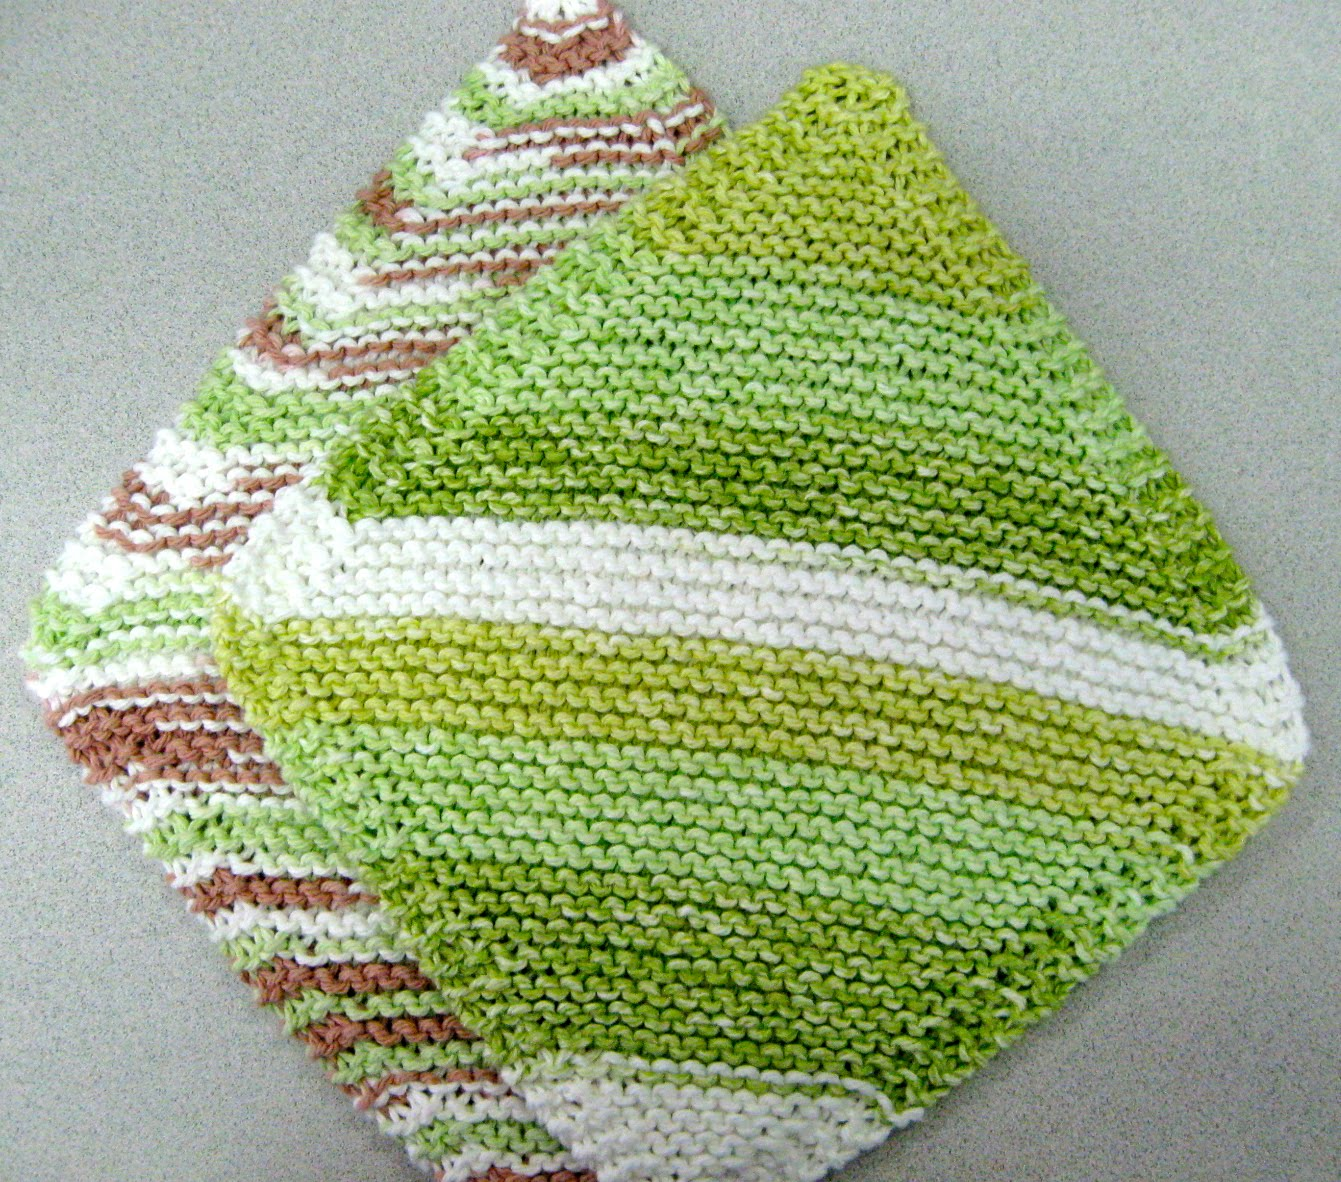 Easy Dishcloth Knitting Pattern For Beginners : Say it ain t so easy knit dishcloths